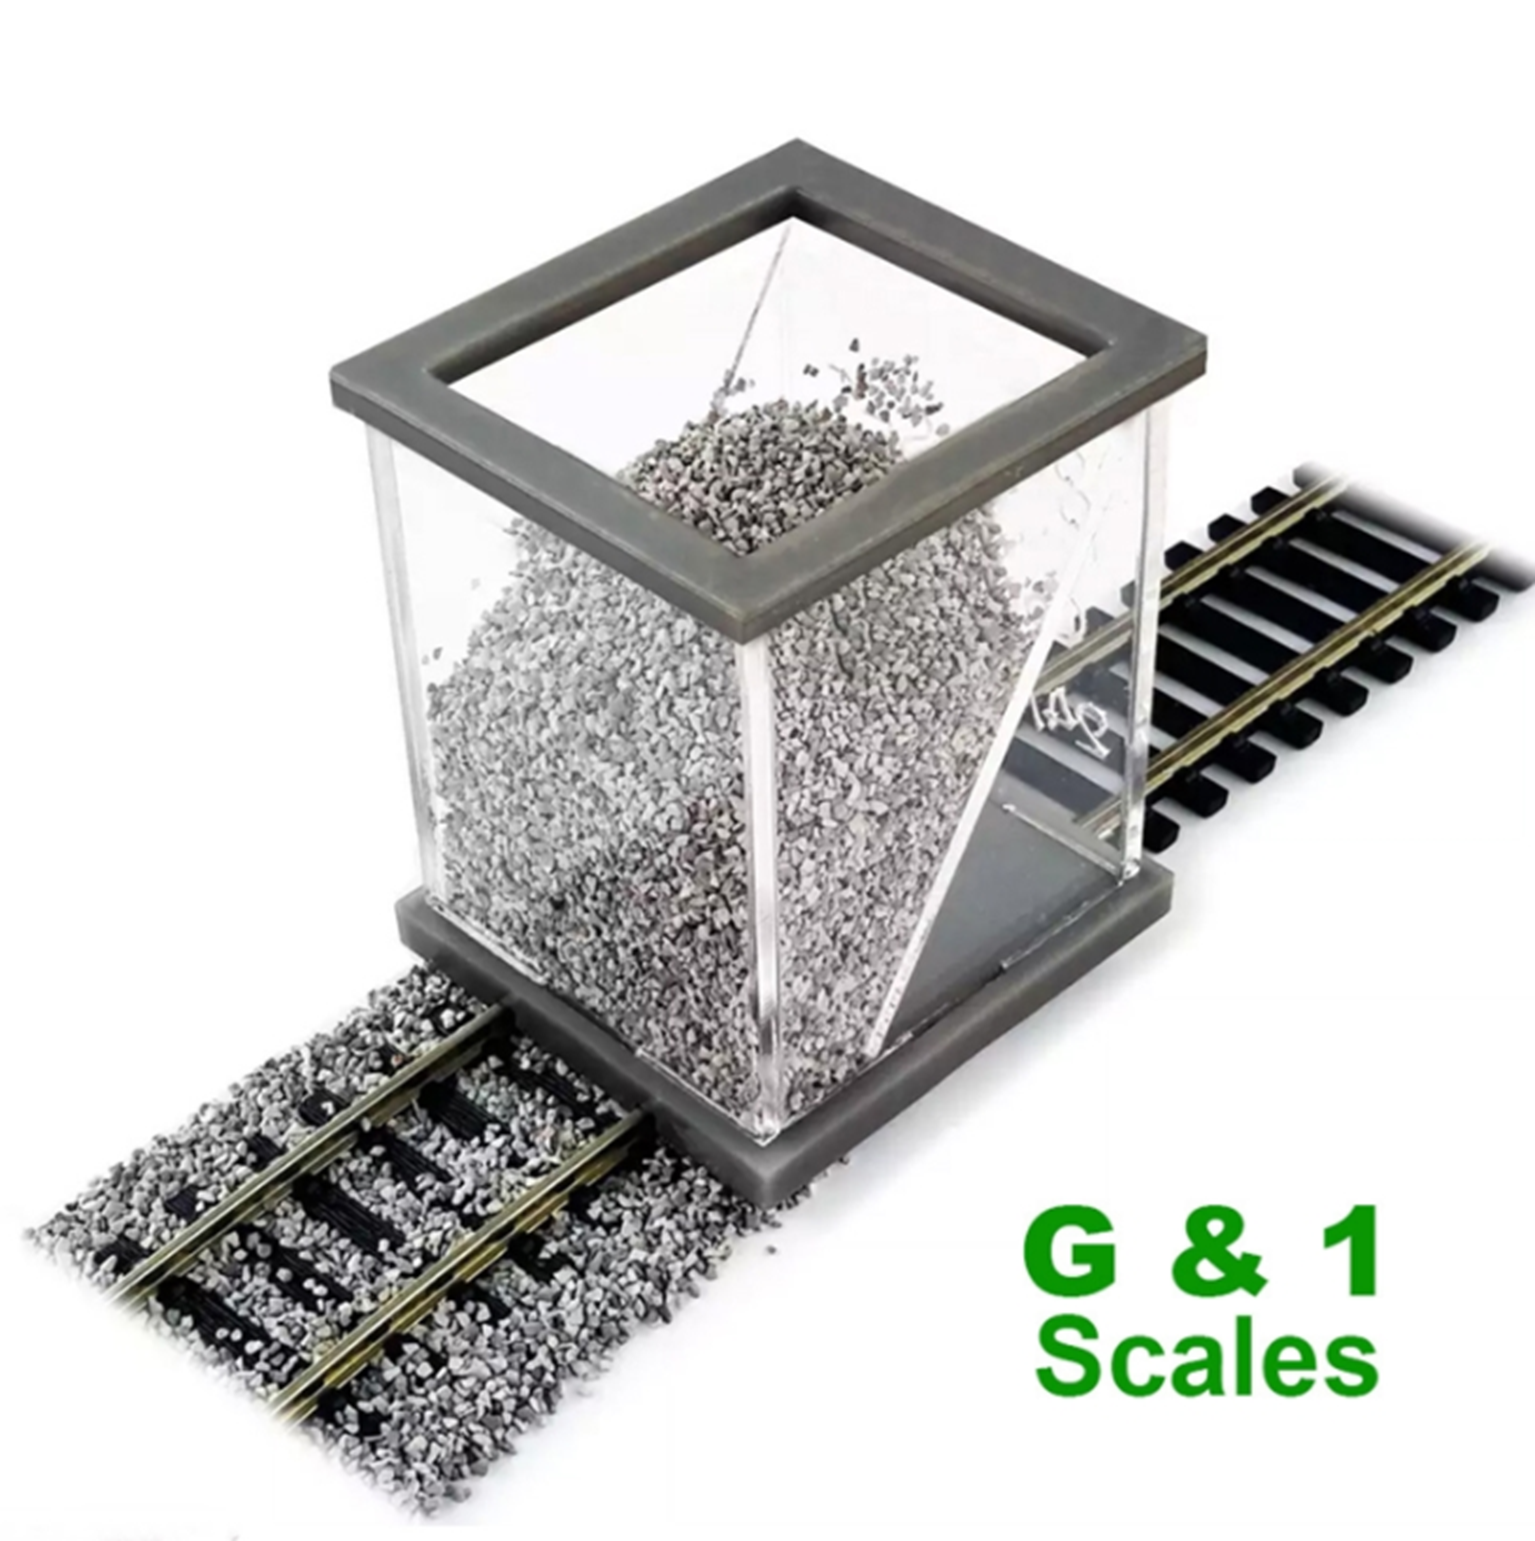 Ballast Spreader for G & 1 Scales (45 mm / 1.772 inch)